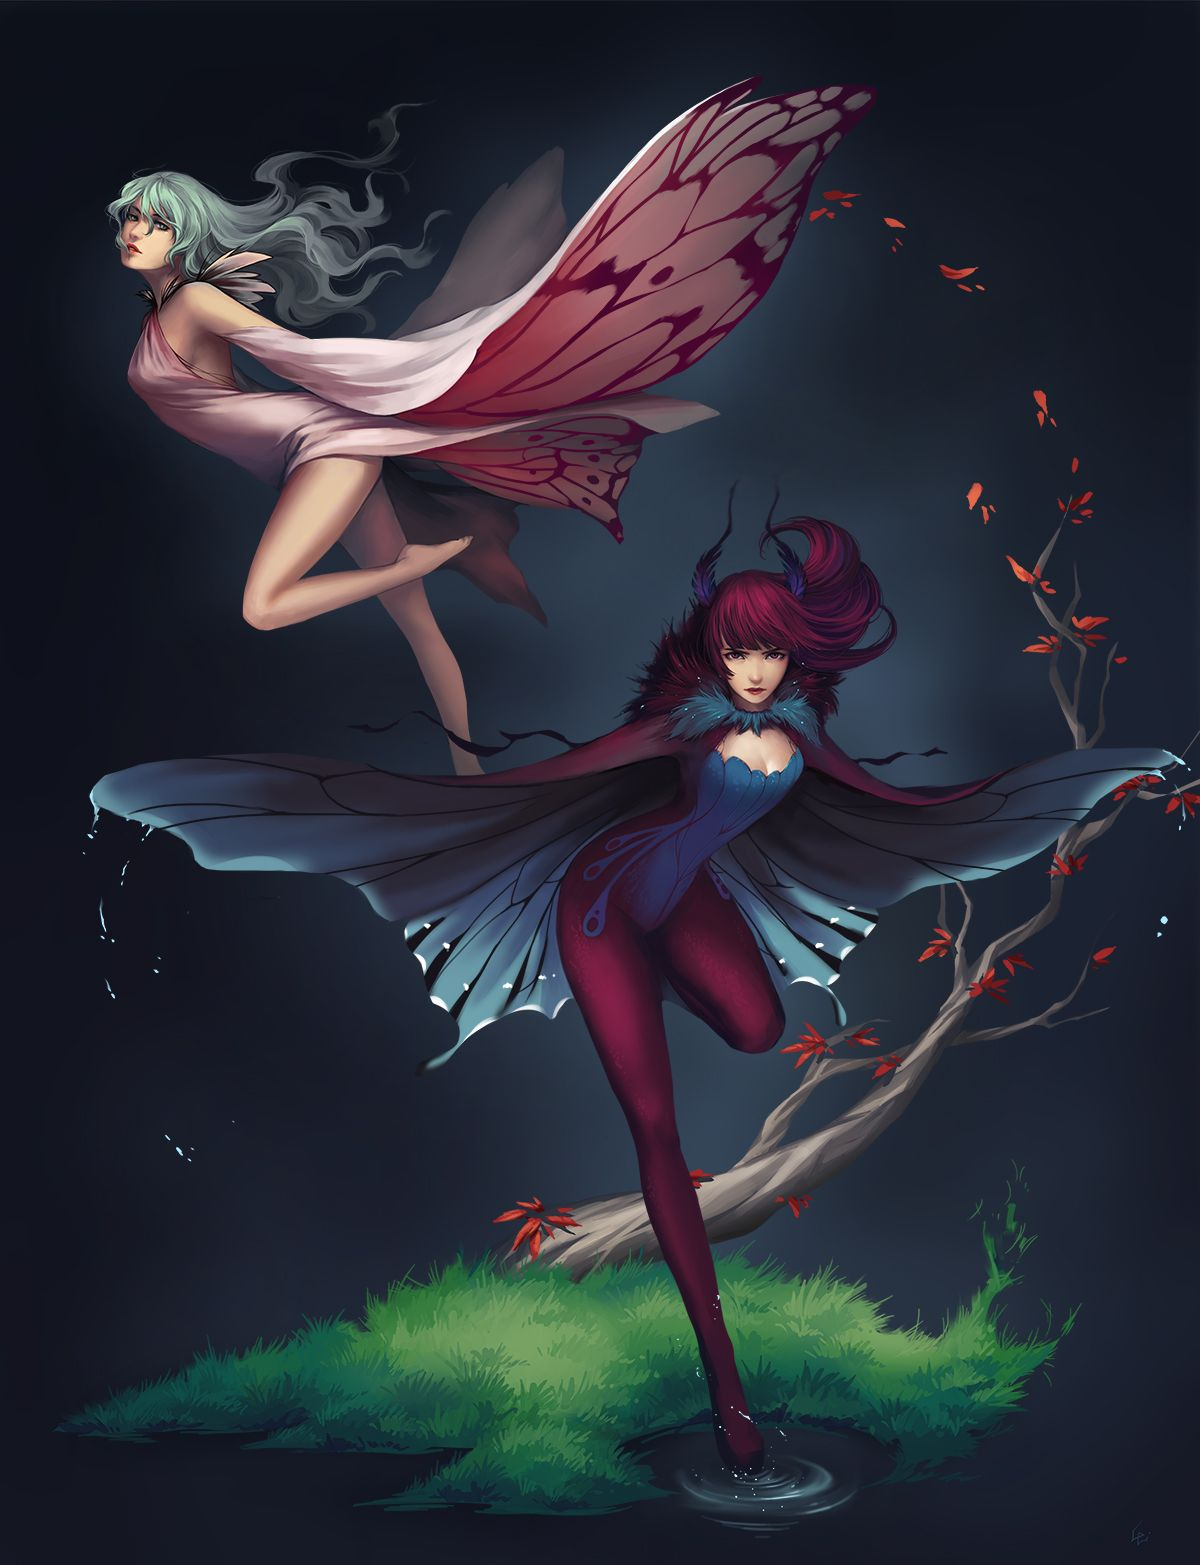 Cyrail Art Of Cg Girls Of Moth And Butterfly By Unodu Featured